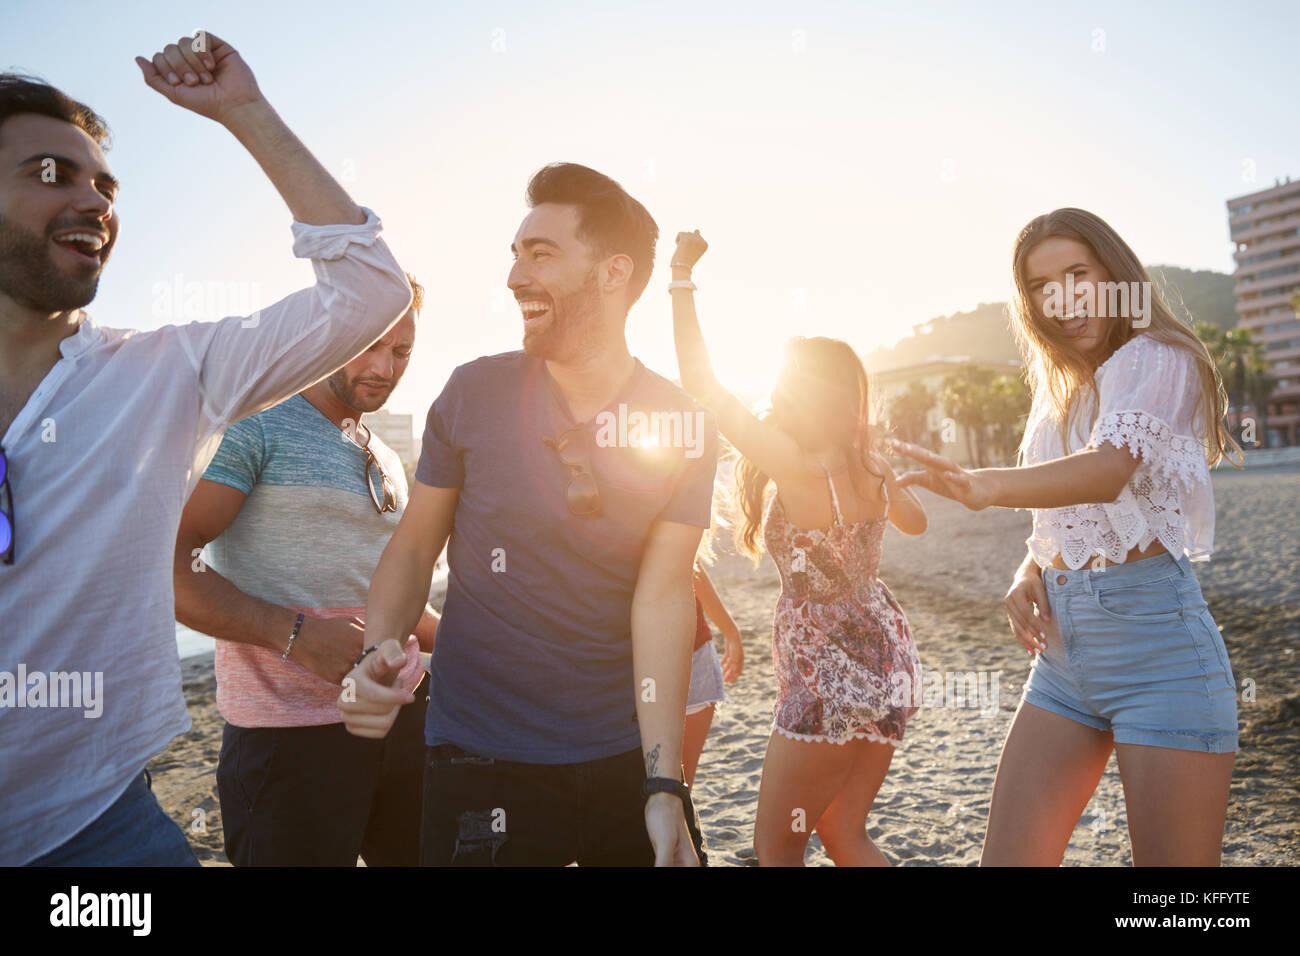 Portrait of young women dancing with their boyfriends on beach - Stock Image